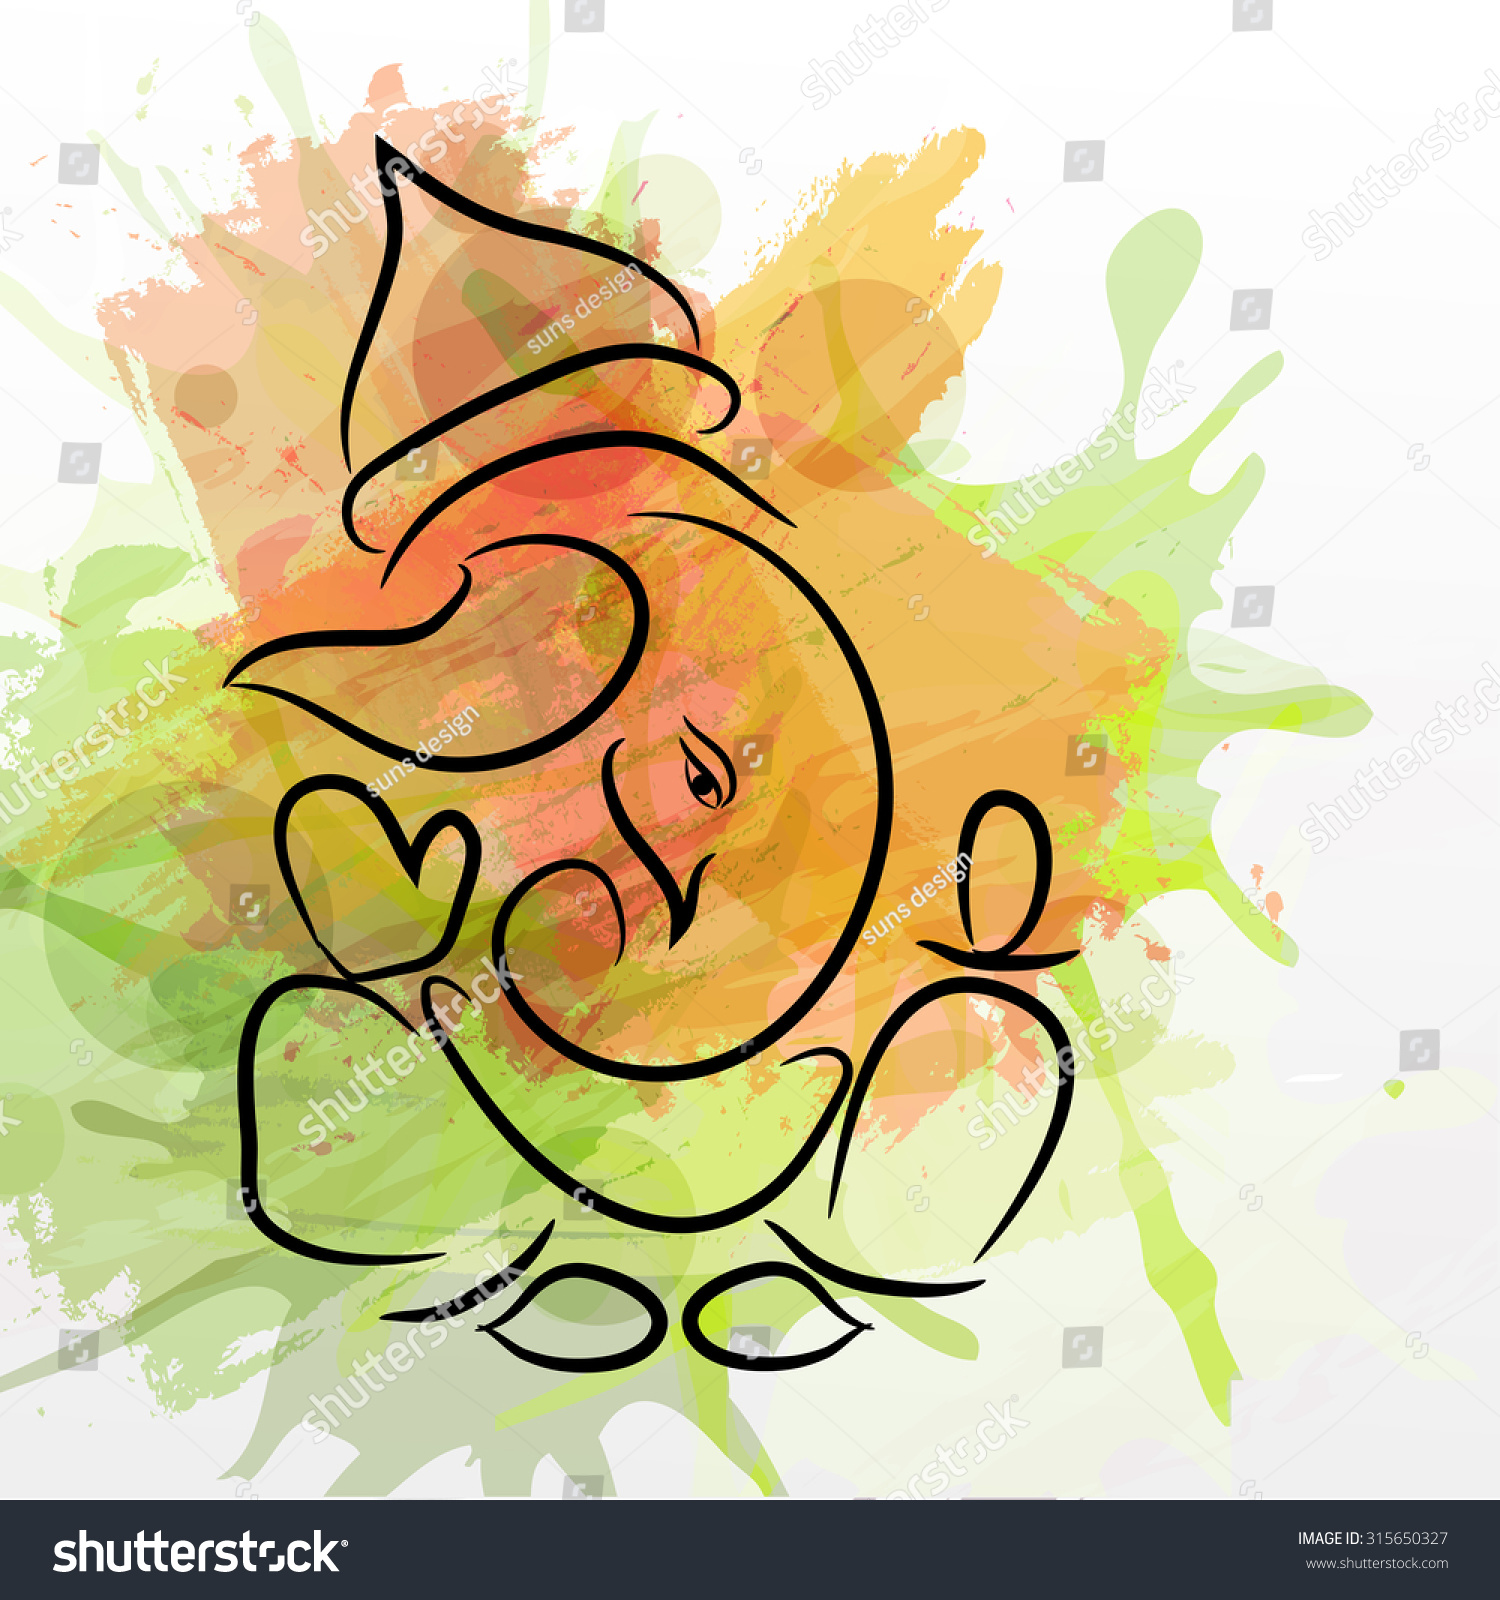 Vector illustration of Lord Ganesh for Ganpati Chaturthi